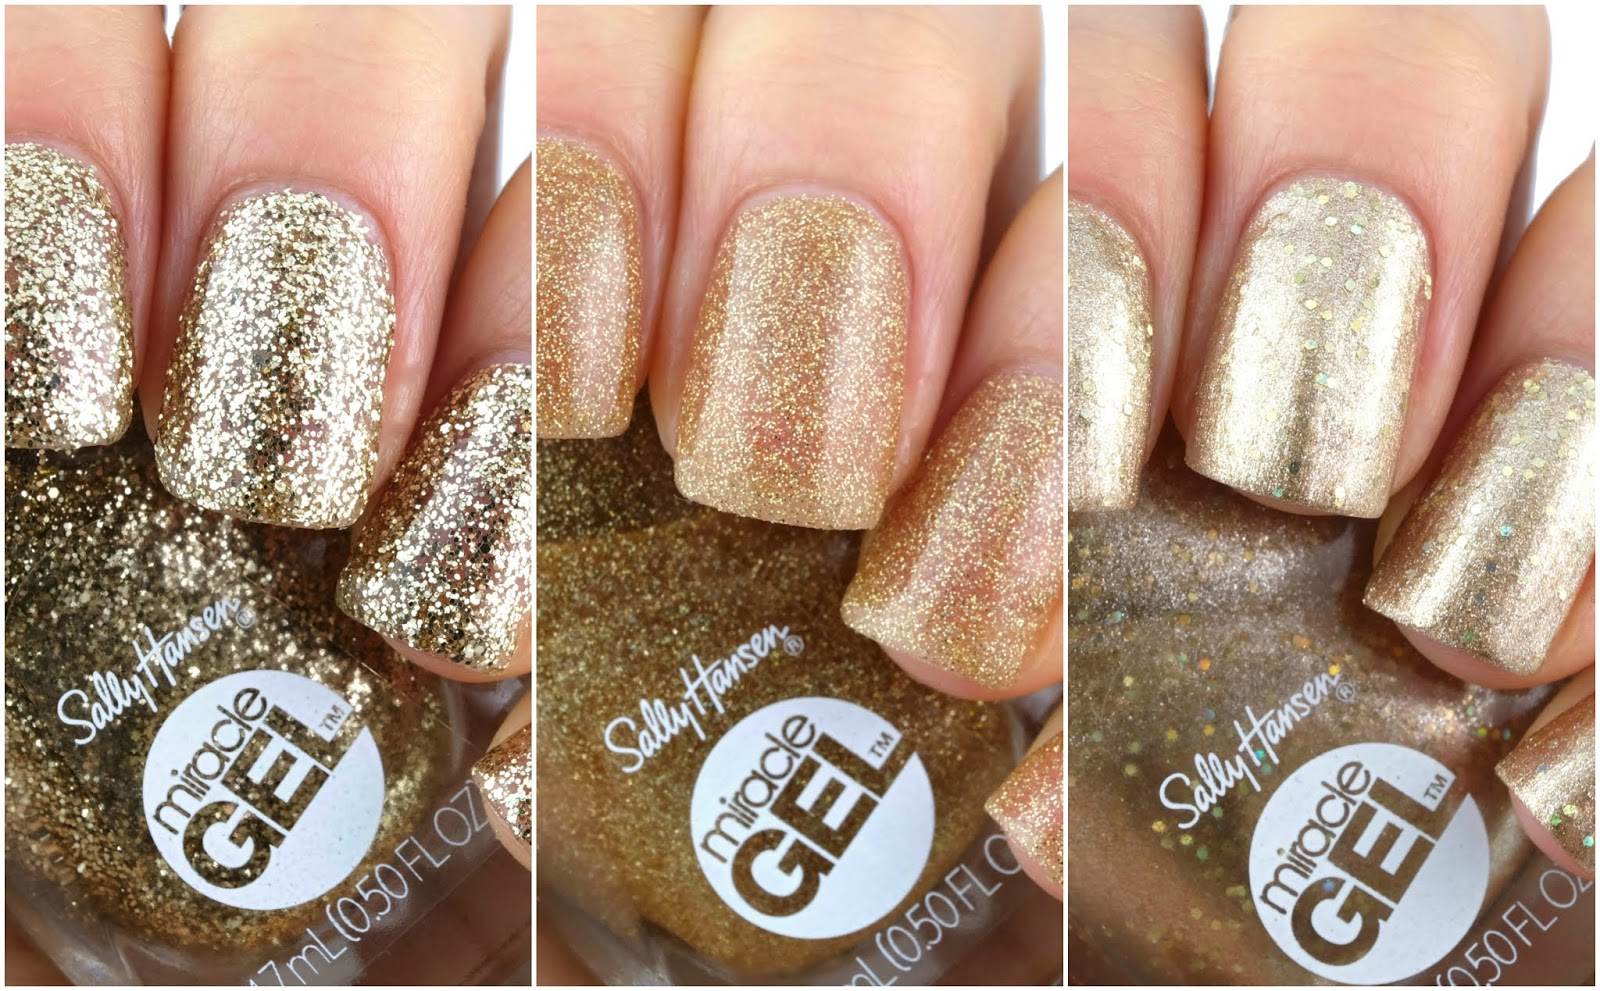 Sally Hansen | Holiday 2019 Oh My Gold! Miracle Gel Collection: Review and Swatches